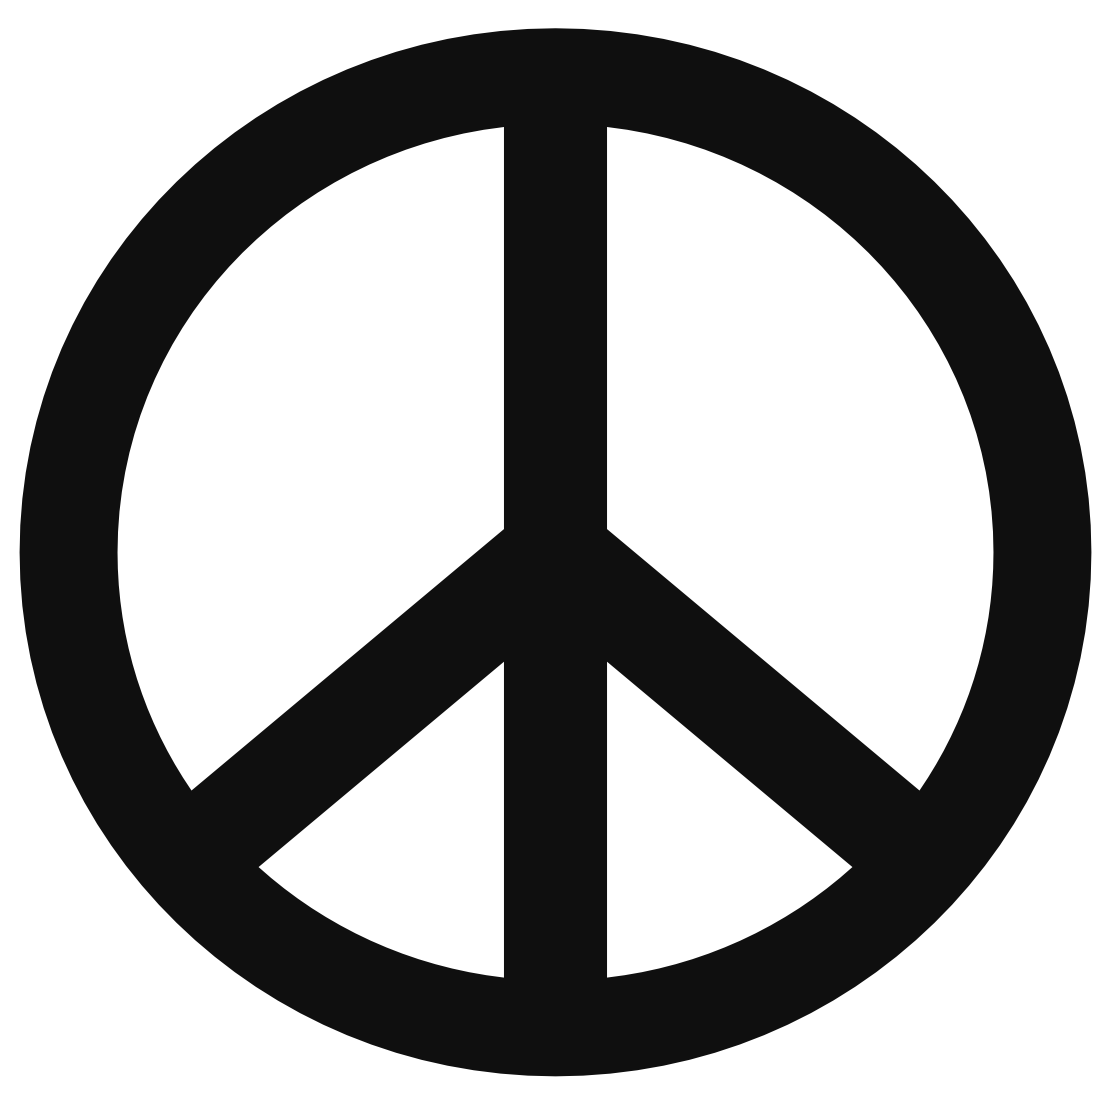 Peace clipart. Sign clip art library